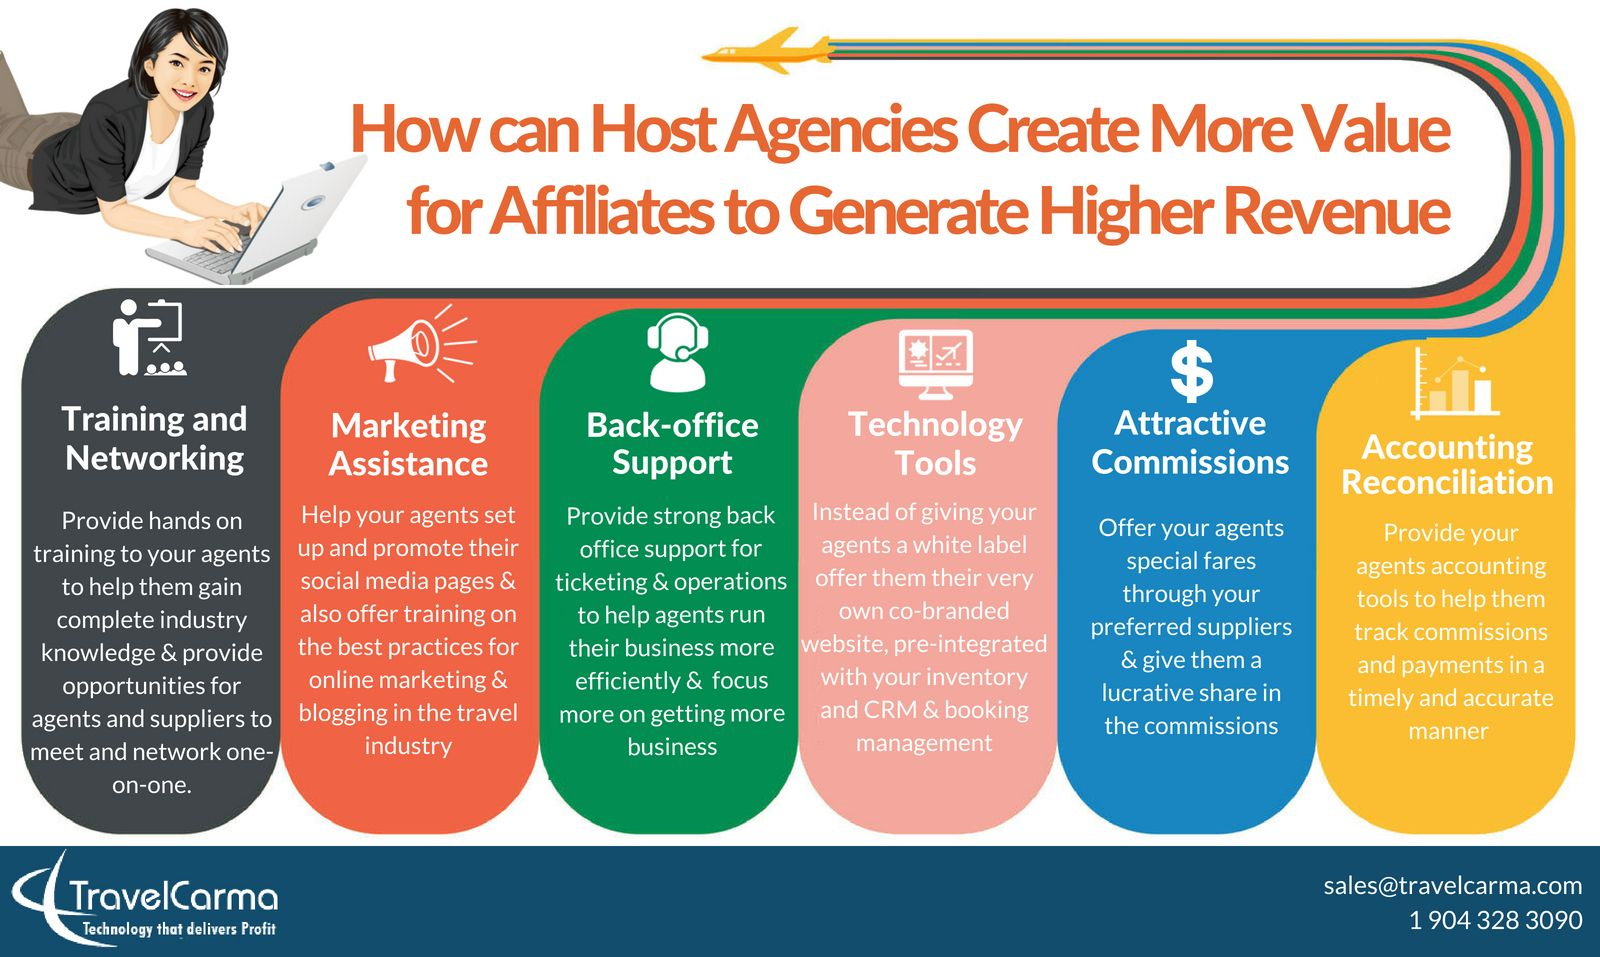 How can Host Agencies Create More Value for Affiliates to